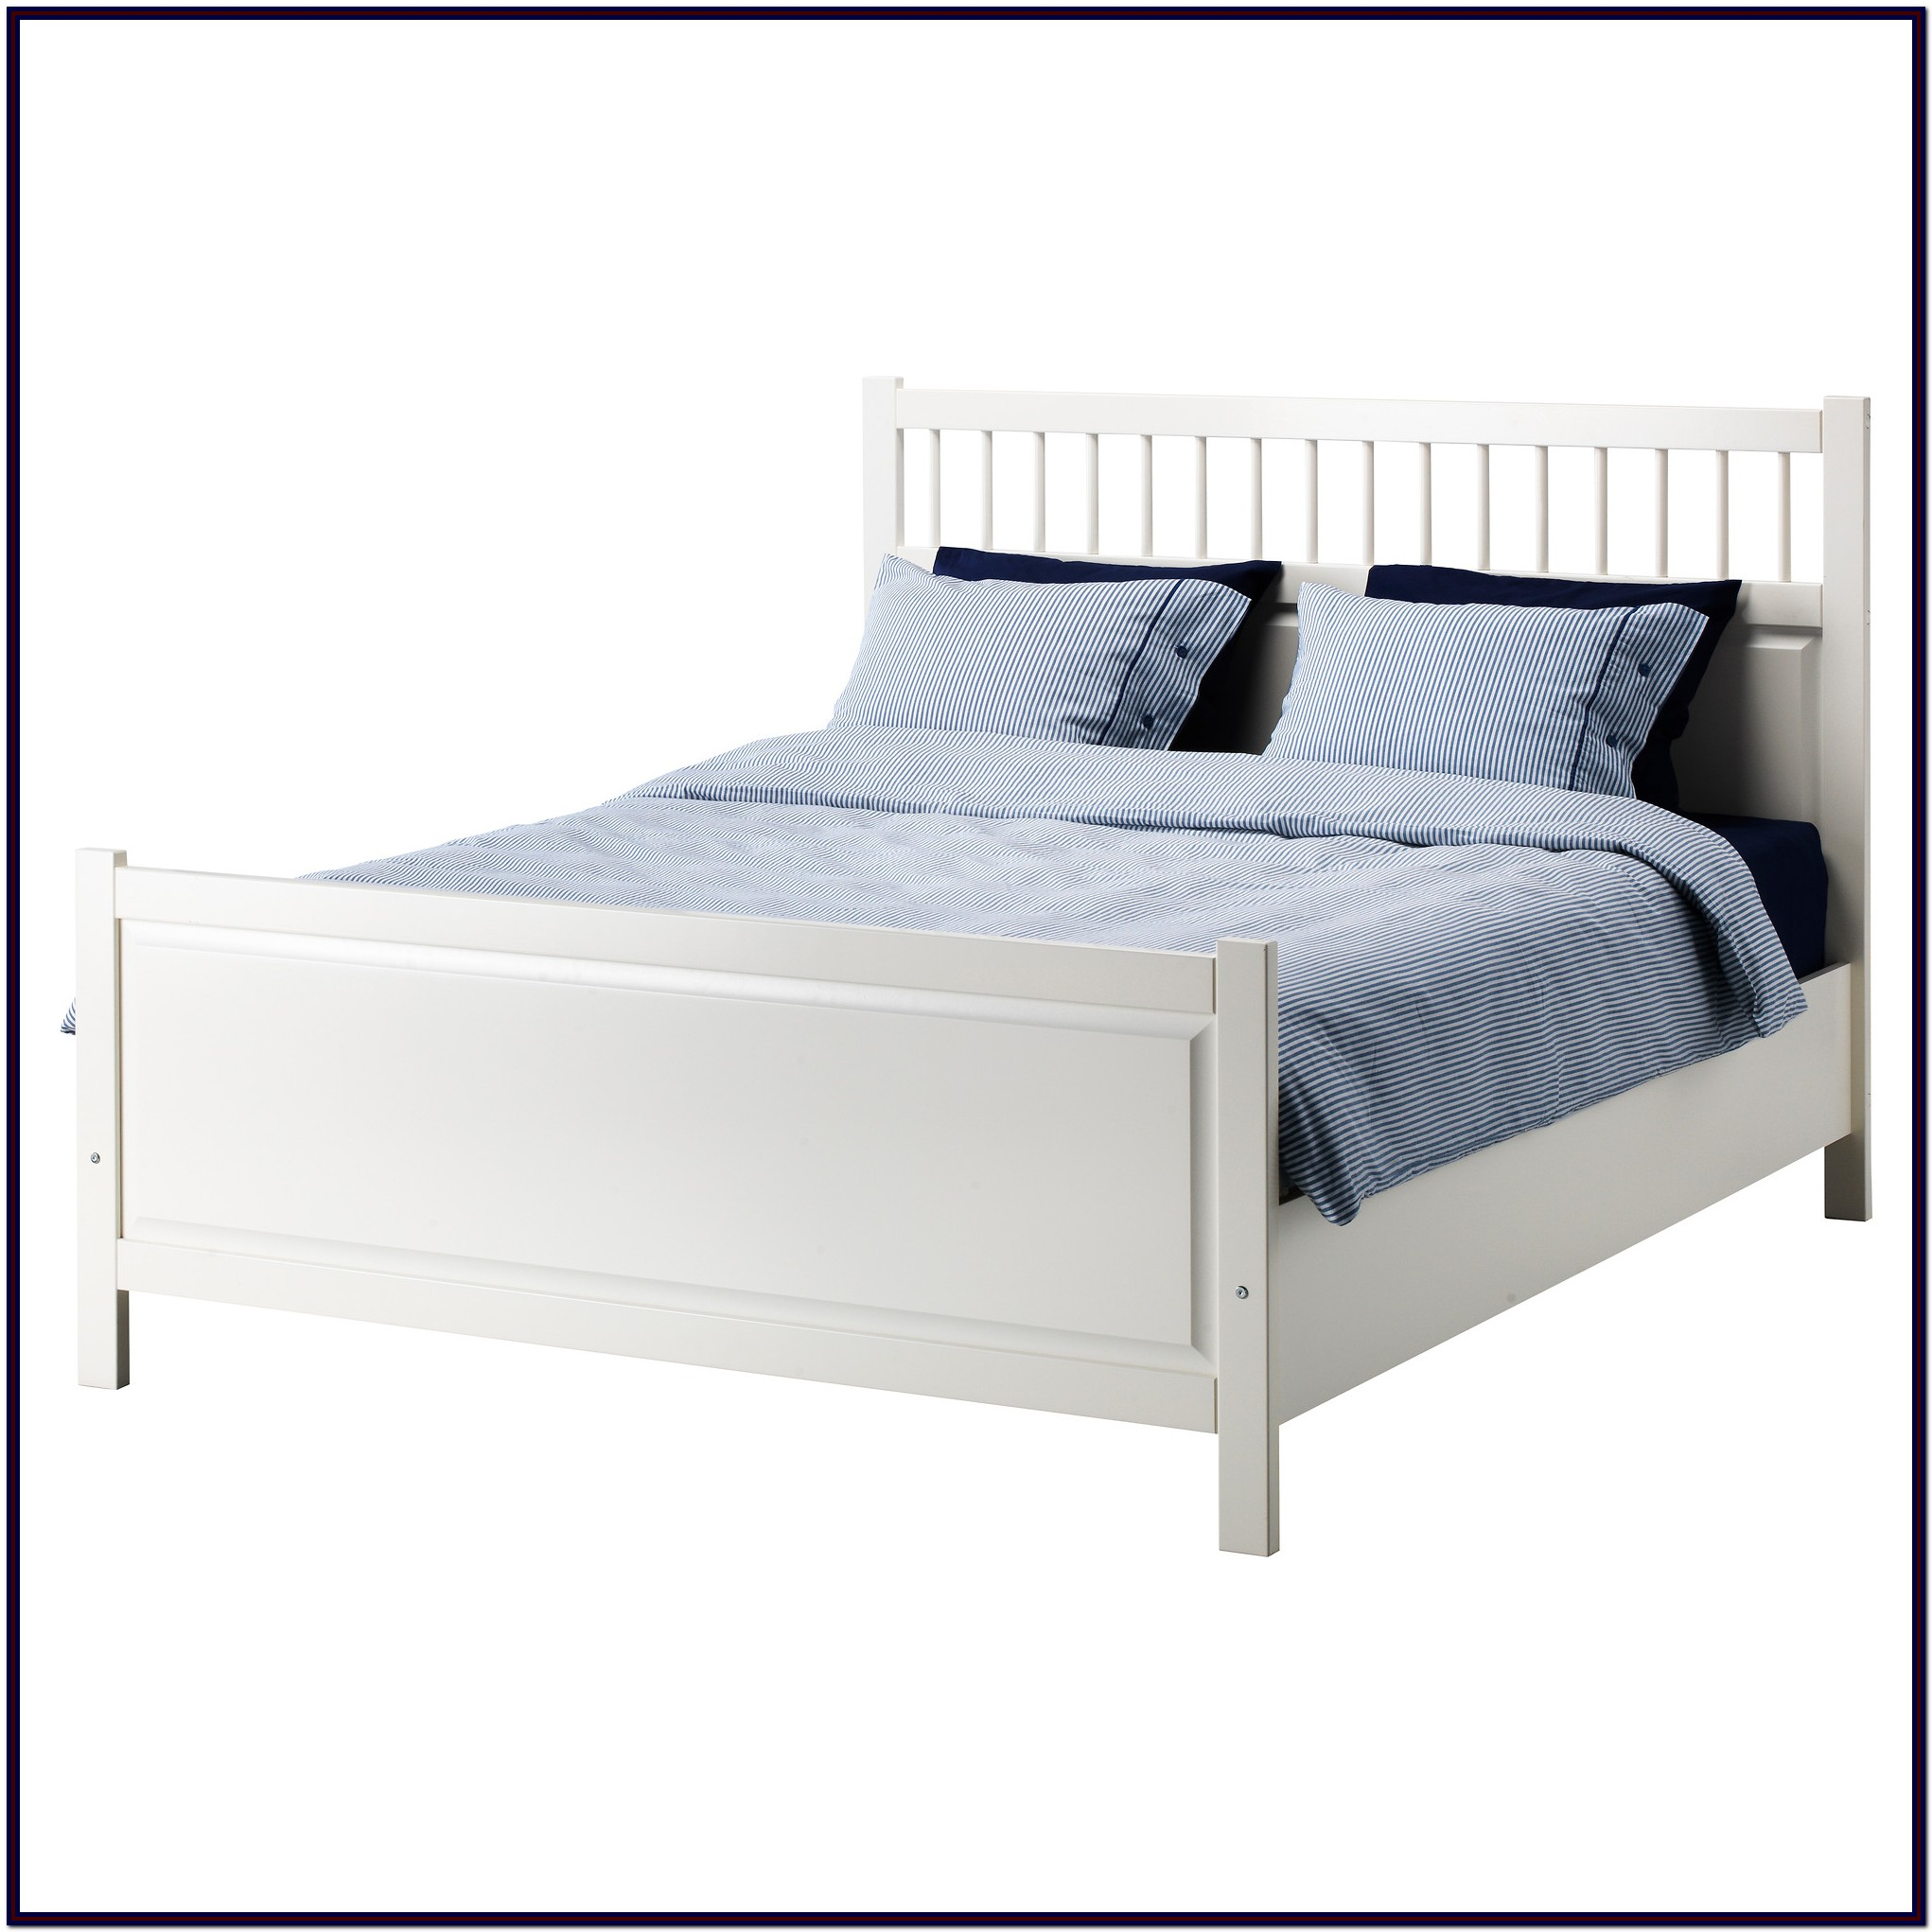 Ikea Hemnes White Queen Bed Frame